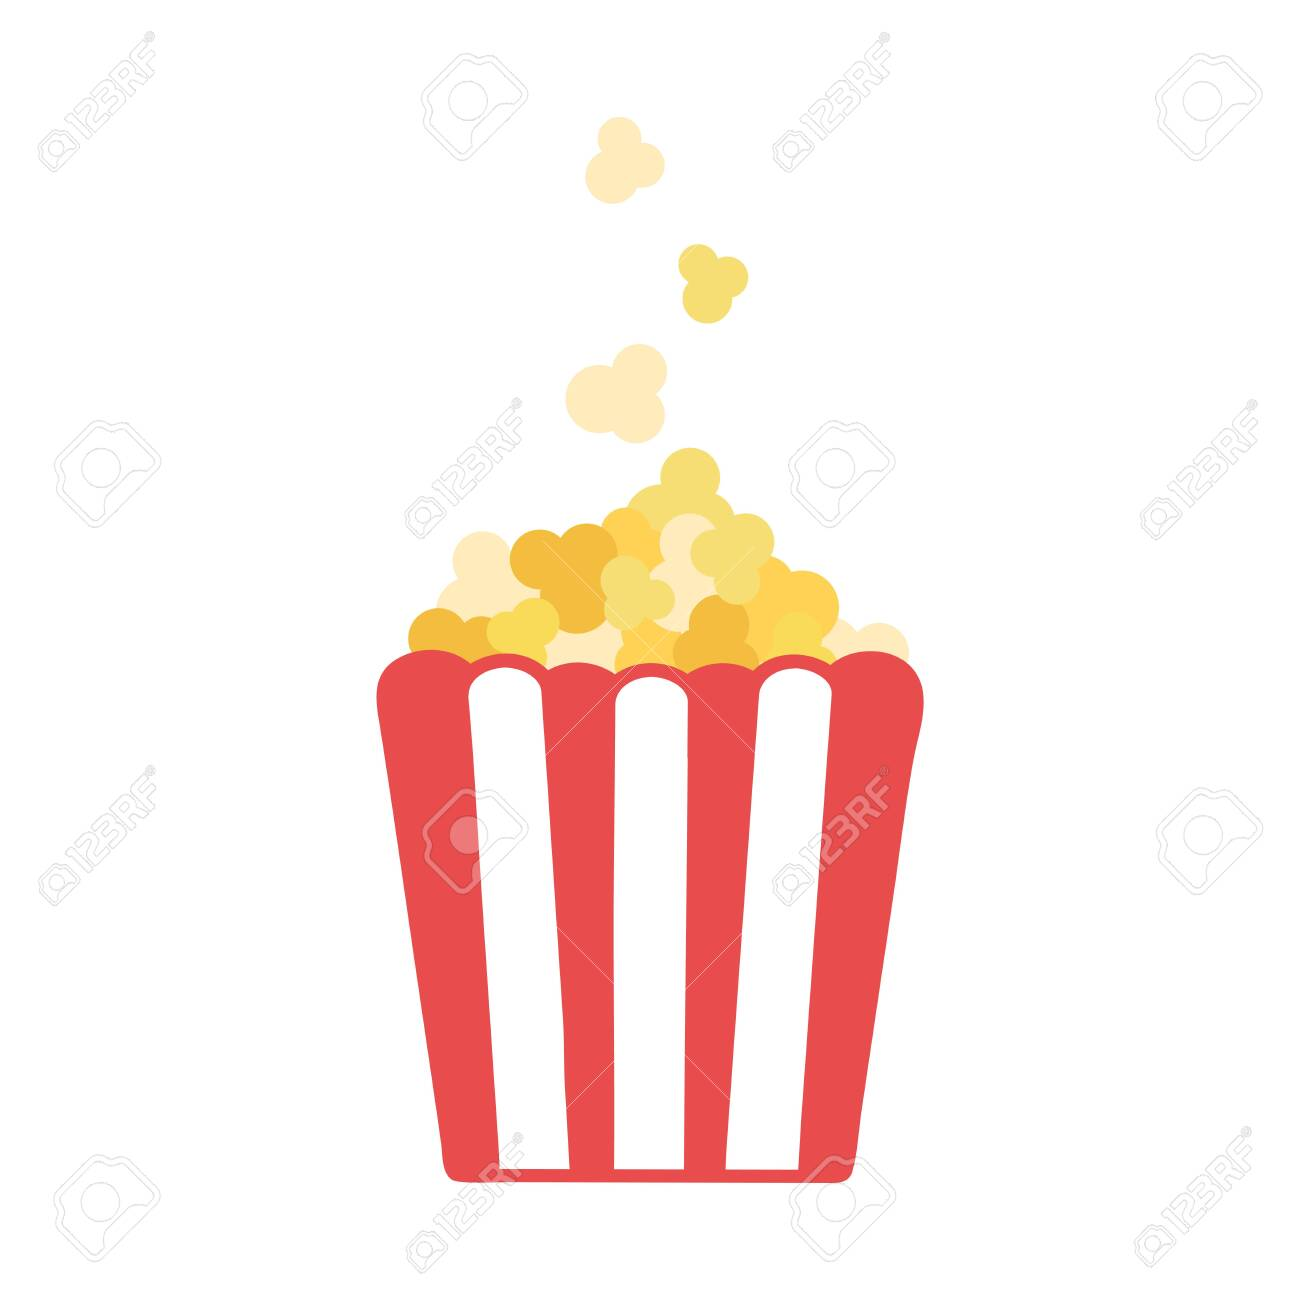 Popcorn. Vector illustration in flat style isolated on white background - 145027561